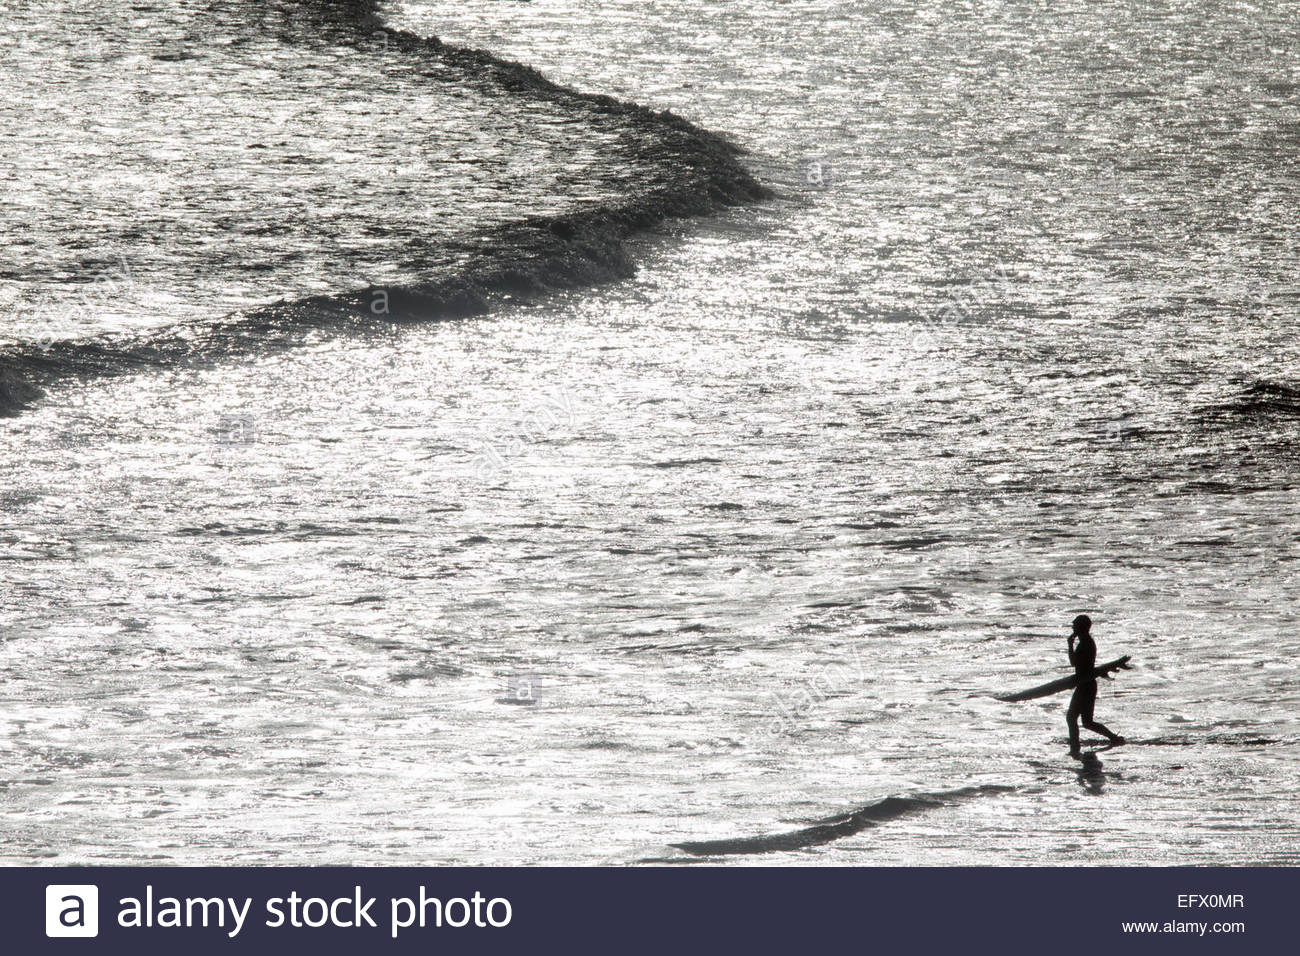 Surfer carrying surf board, pataugeant dans la mer Photo Stock